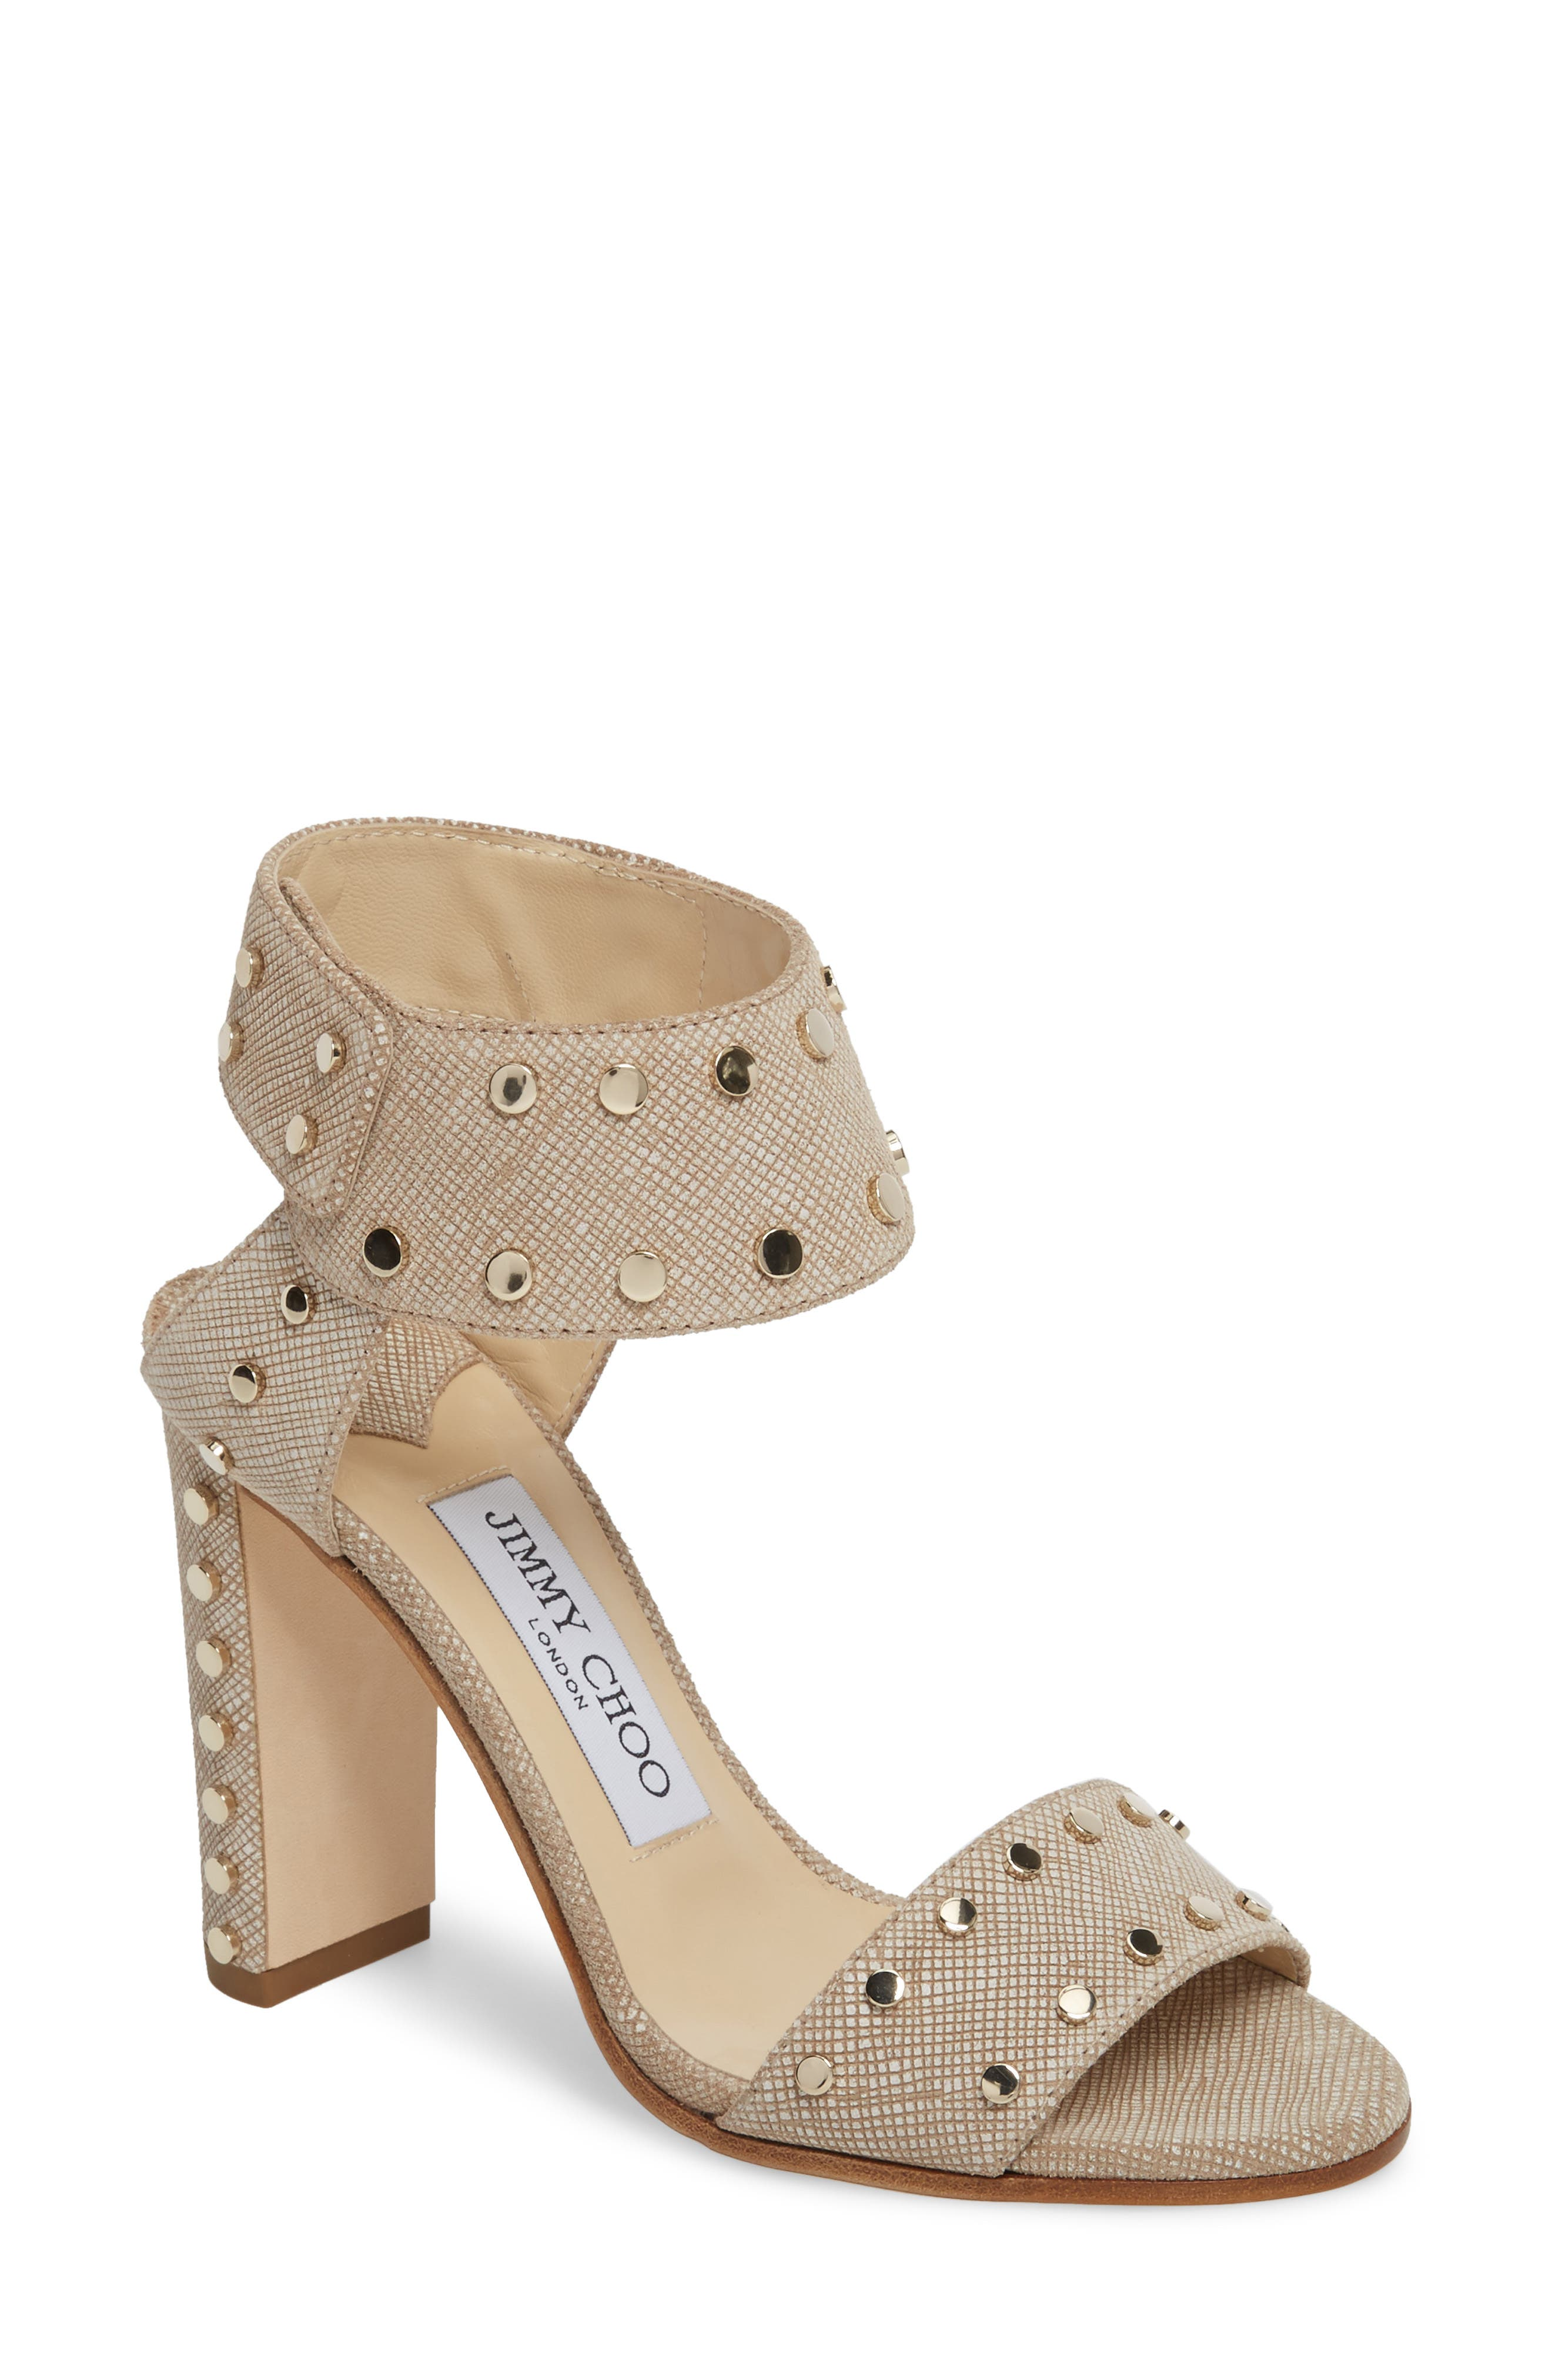 Veto Studded Ankle Cuff Sandal,                         Main,                         color, Chai/ Gold